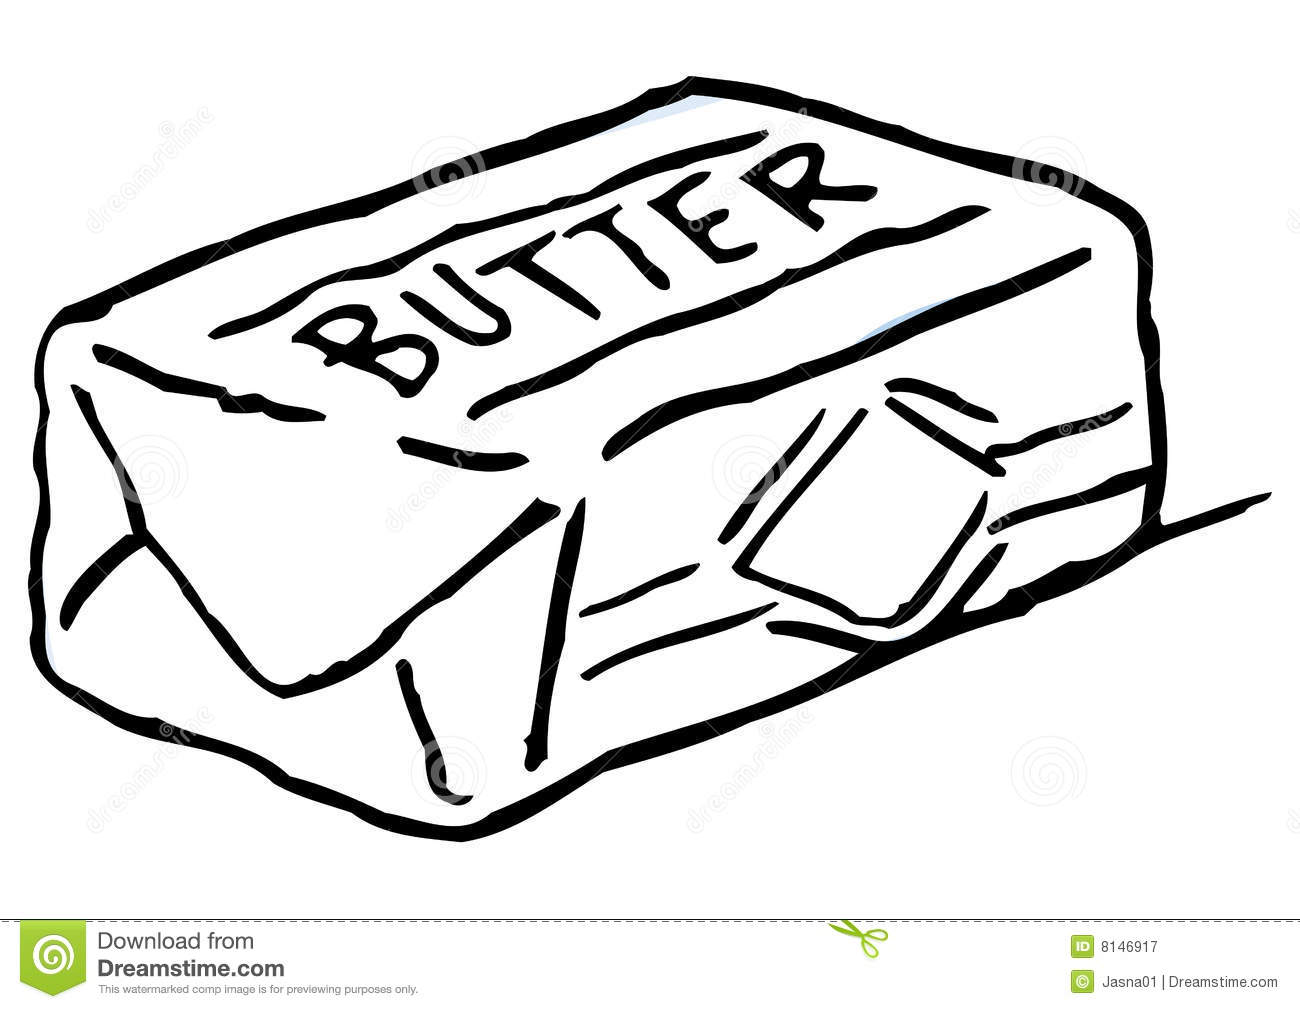 Butter clipart black and white » Clipart Station.